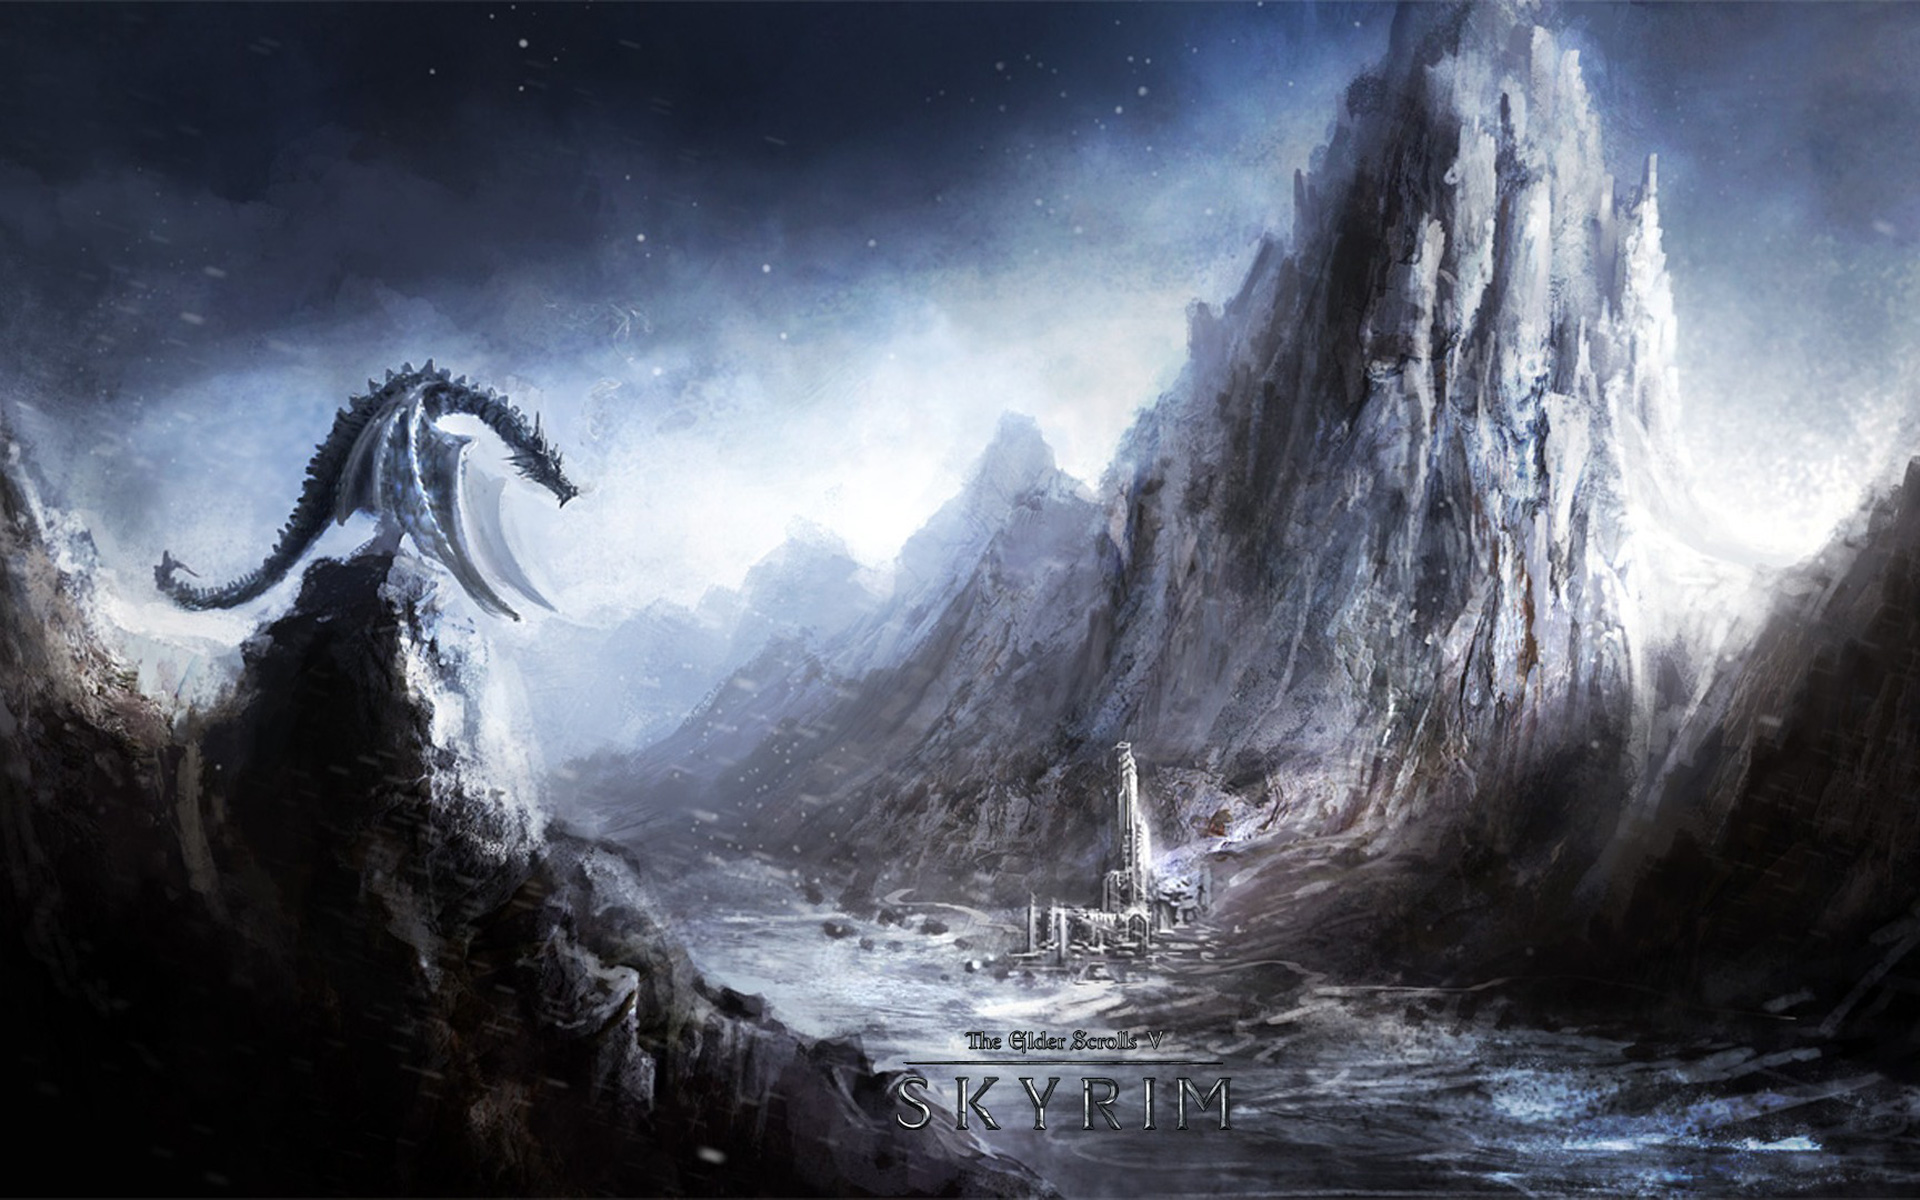 Skyrim Wallpaper 1920X1080